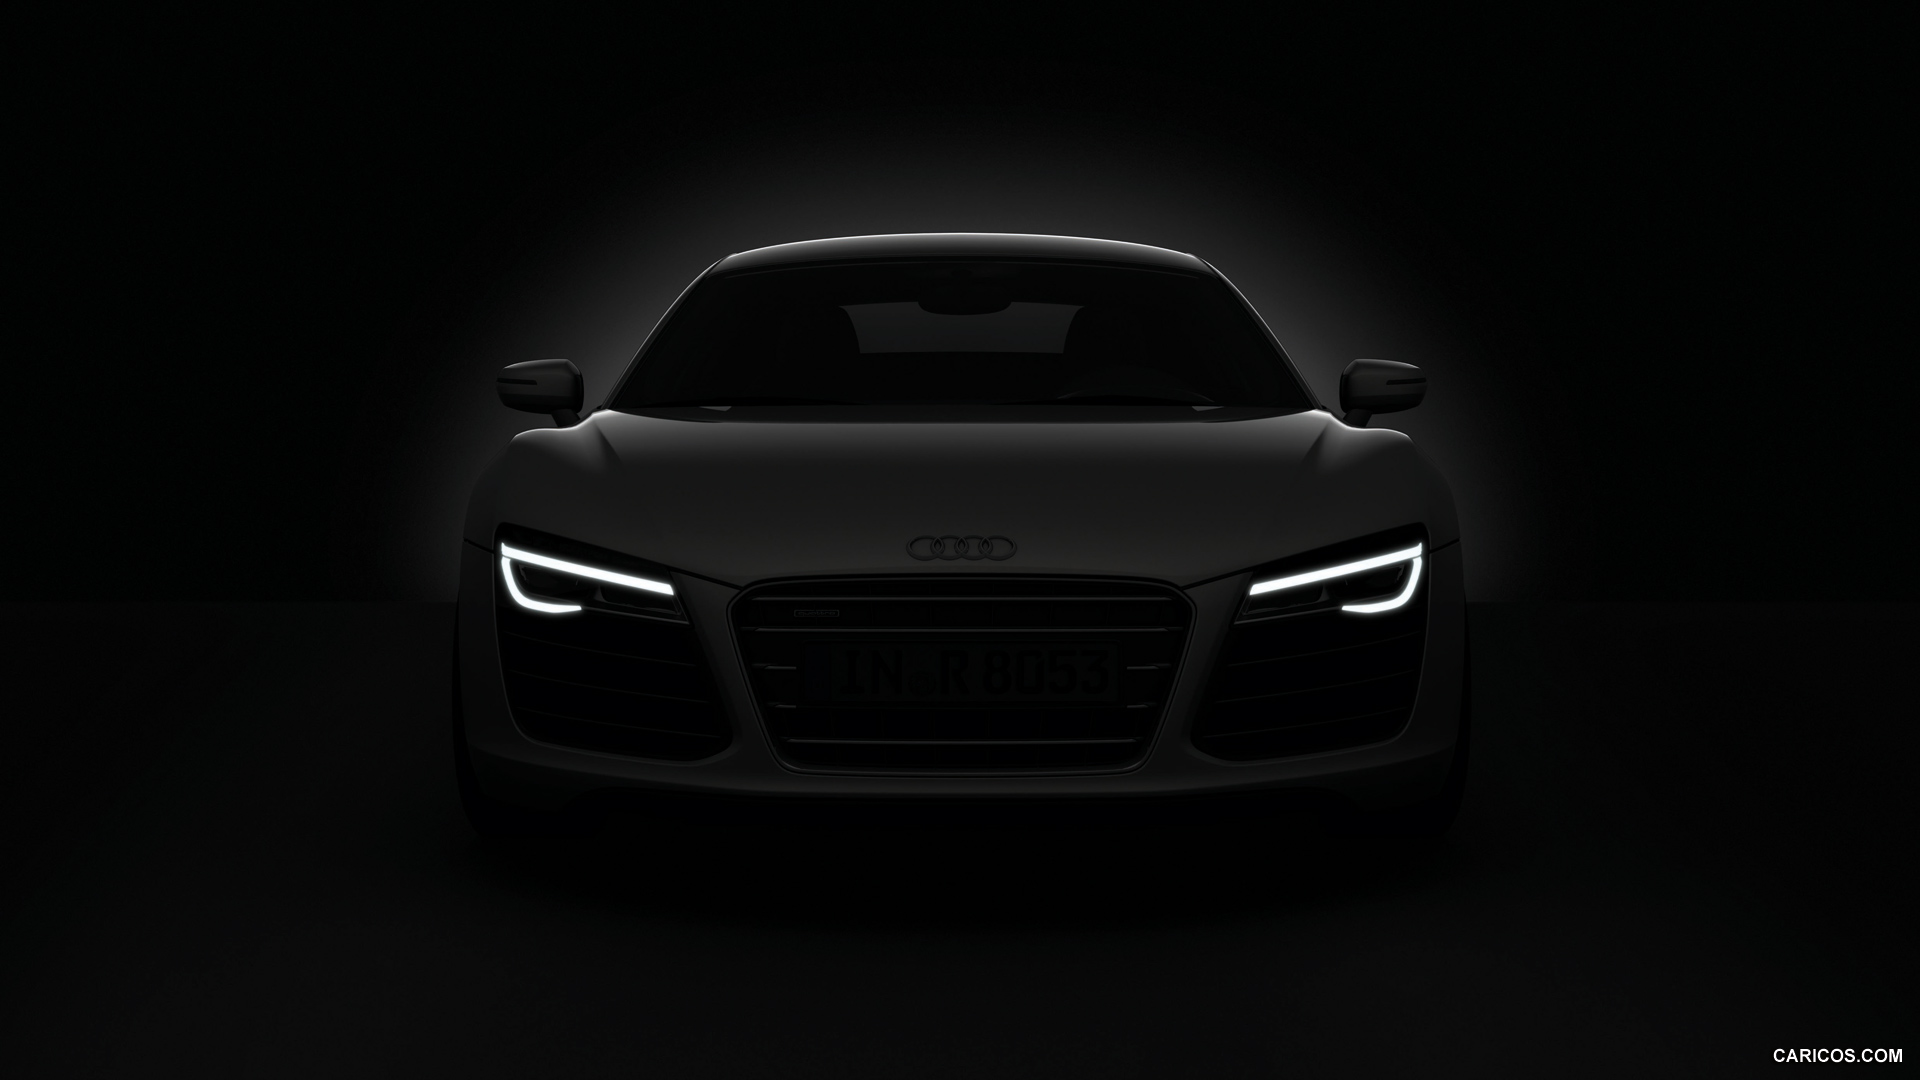 2013 Audi R8 LED Headlights | HD Wallpaper #31